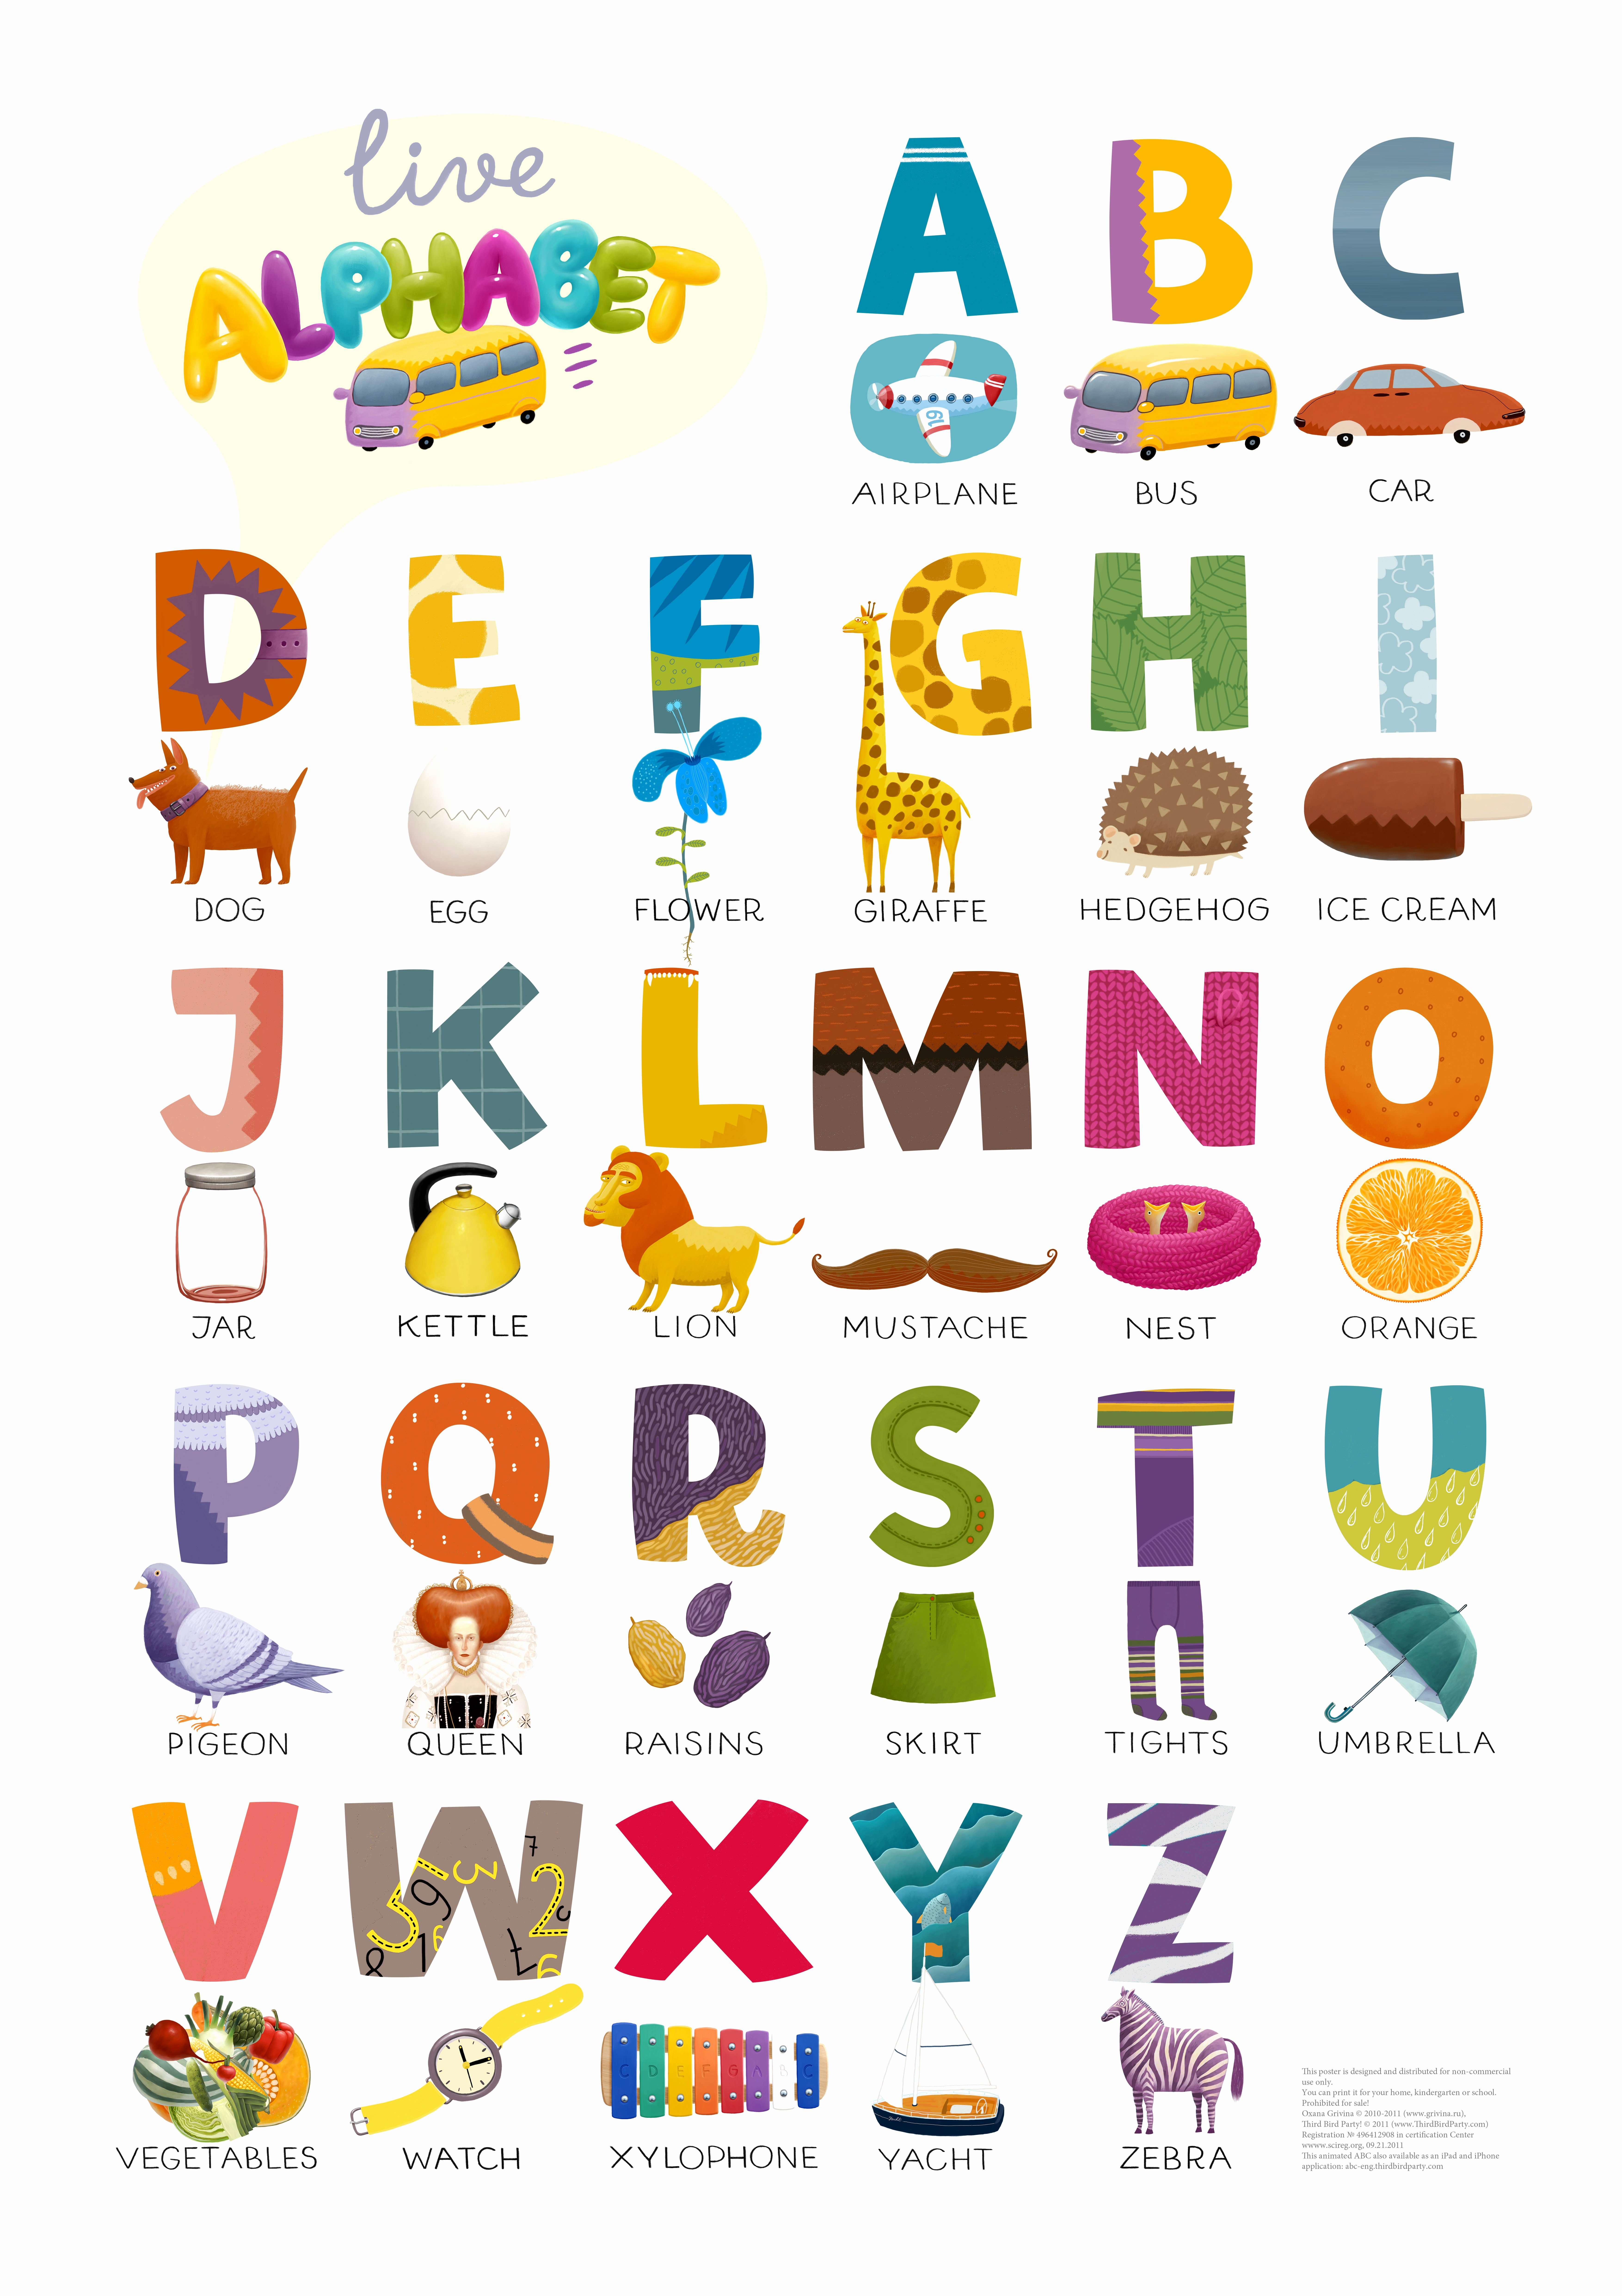 Alphabet Letters with Pictures New Free Abc Alphabet Download Free Clip Art Free Clip Art